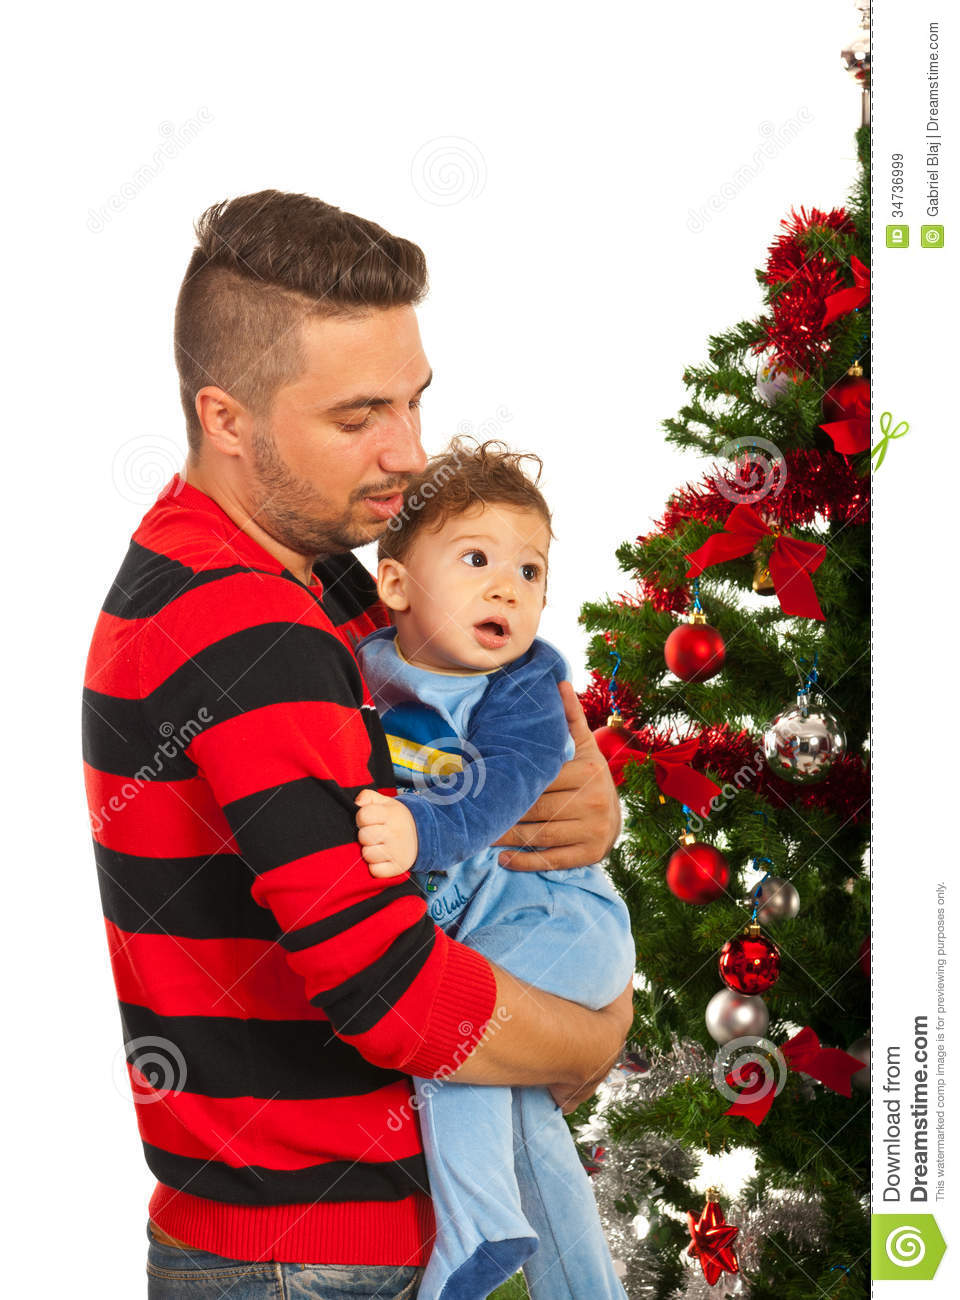 Father and son near Christmas tree